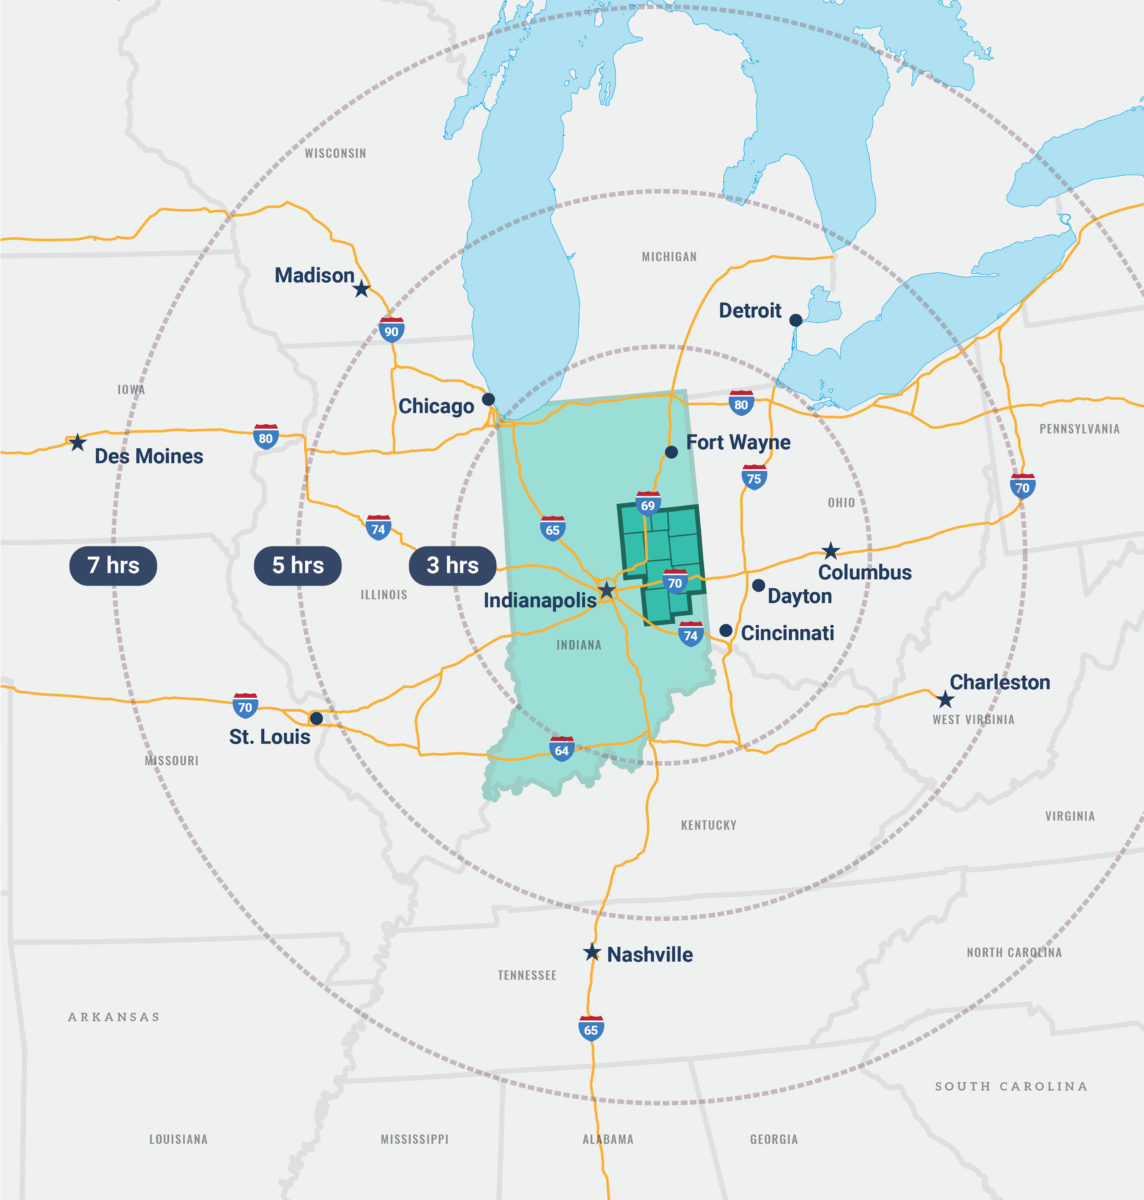 View of map showing drive times to major cities and states outside of East Central Indiana